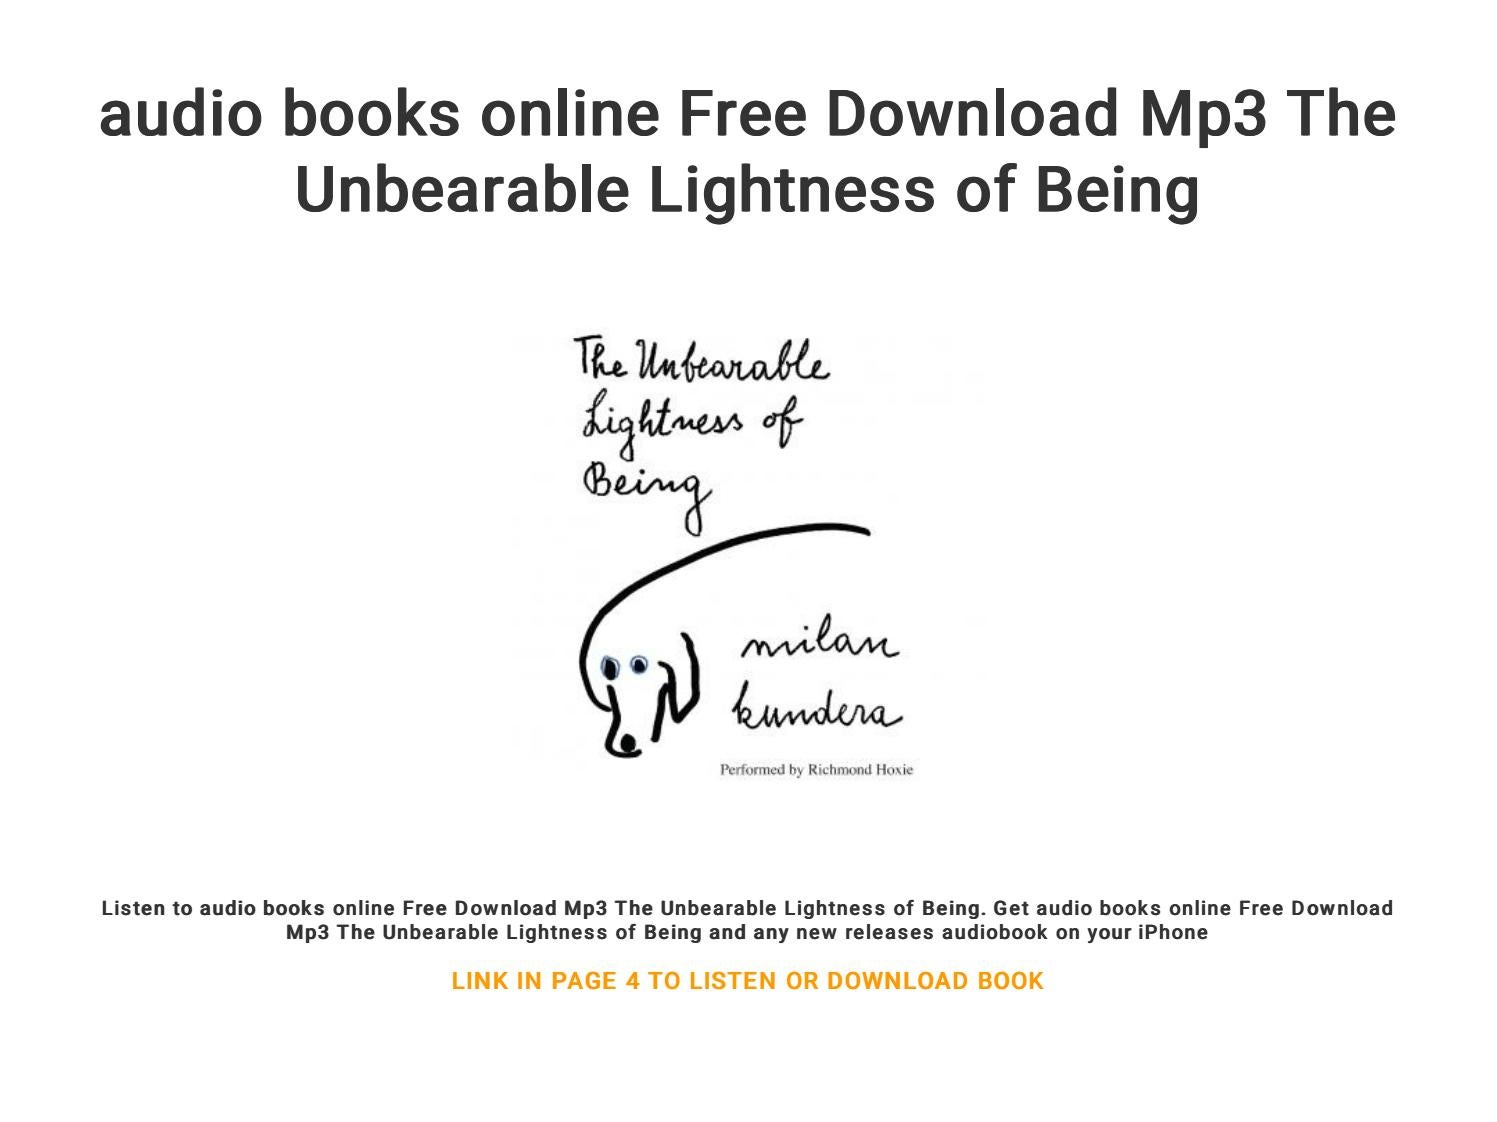 audio books online free download mp3